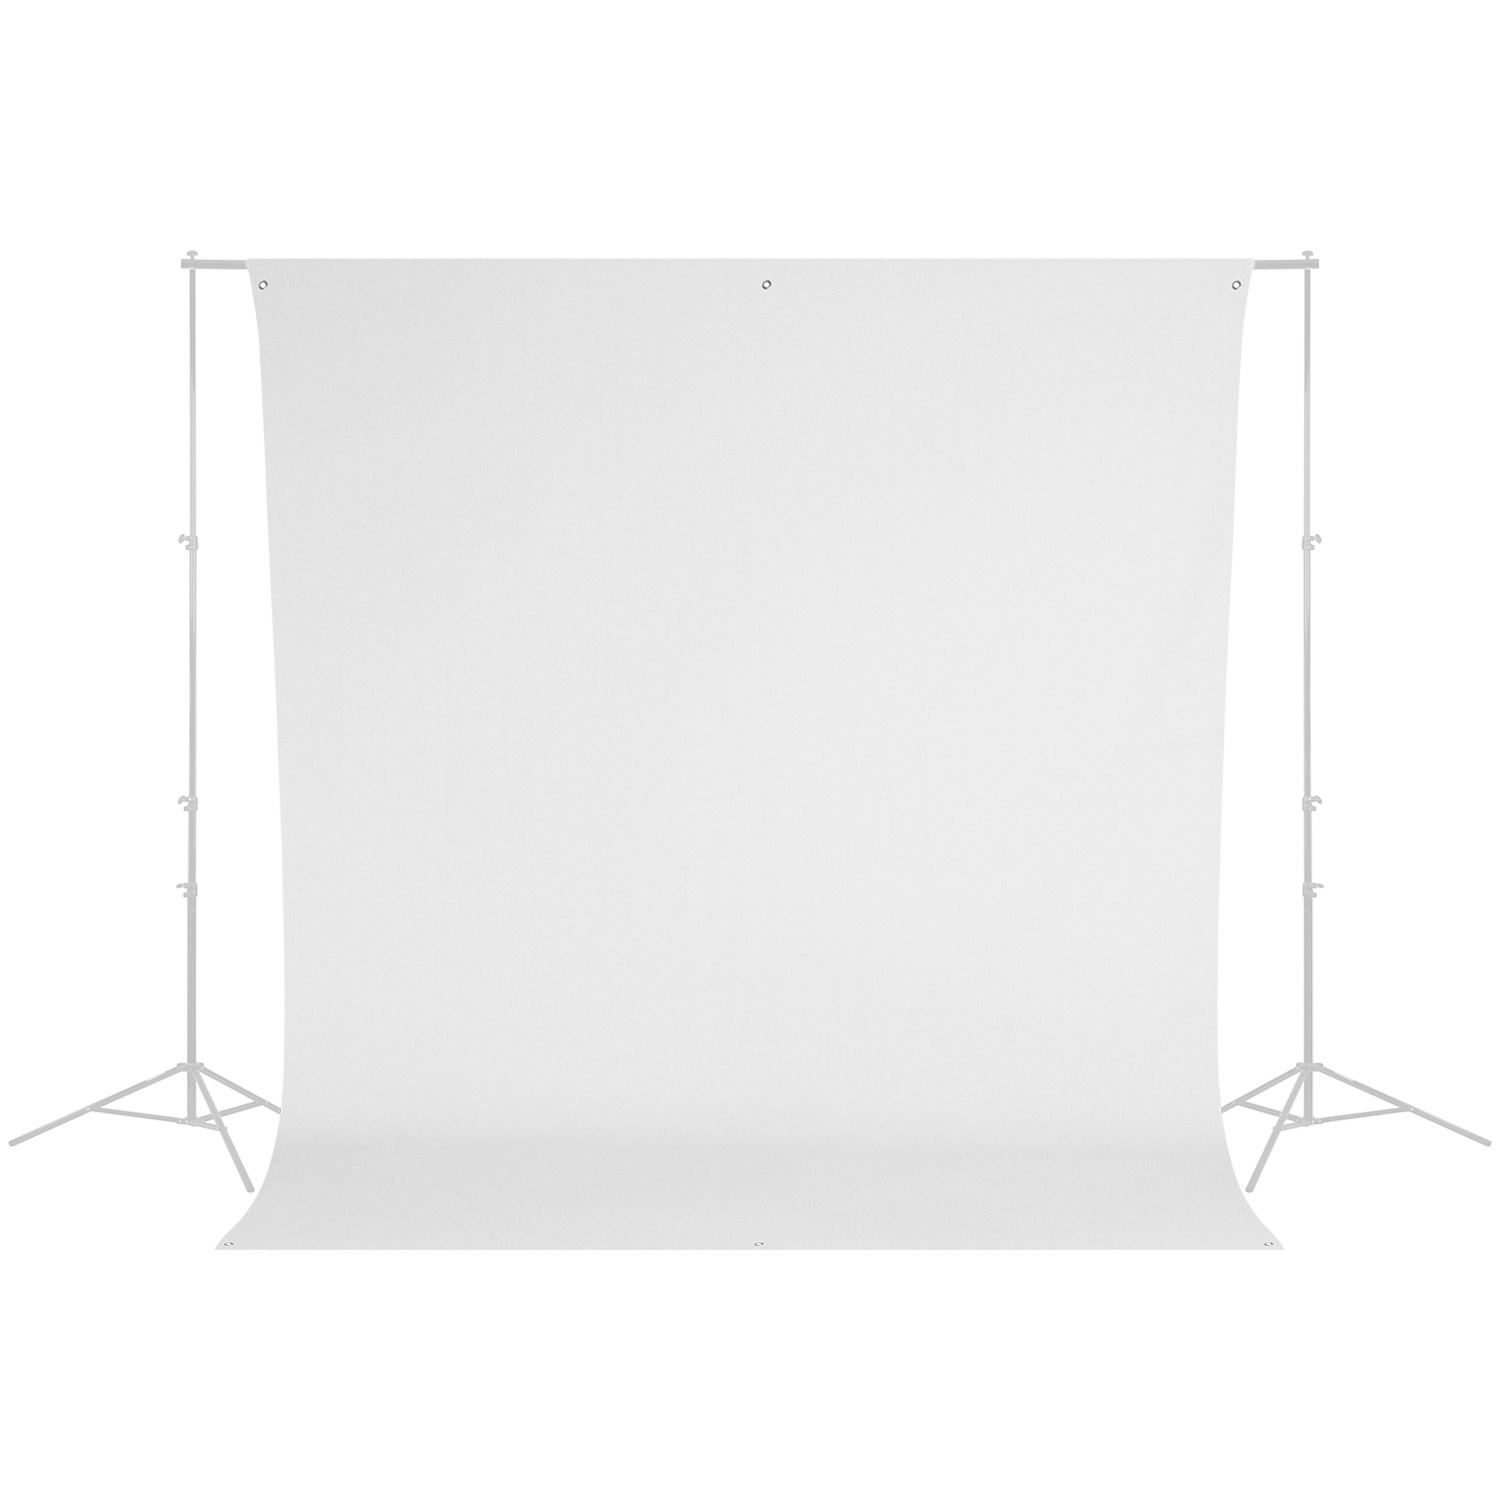 Wrinkle-Resistant Backdrop - High-Key White (9' x 10')